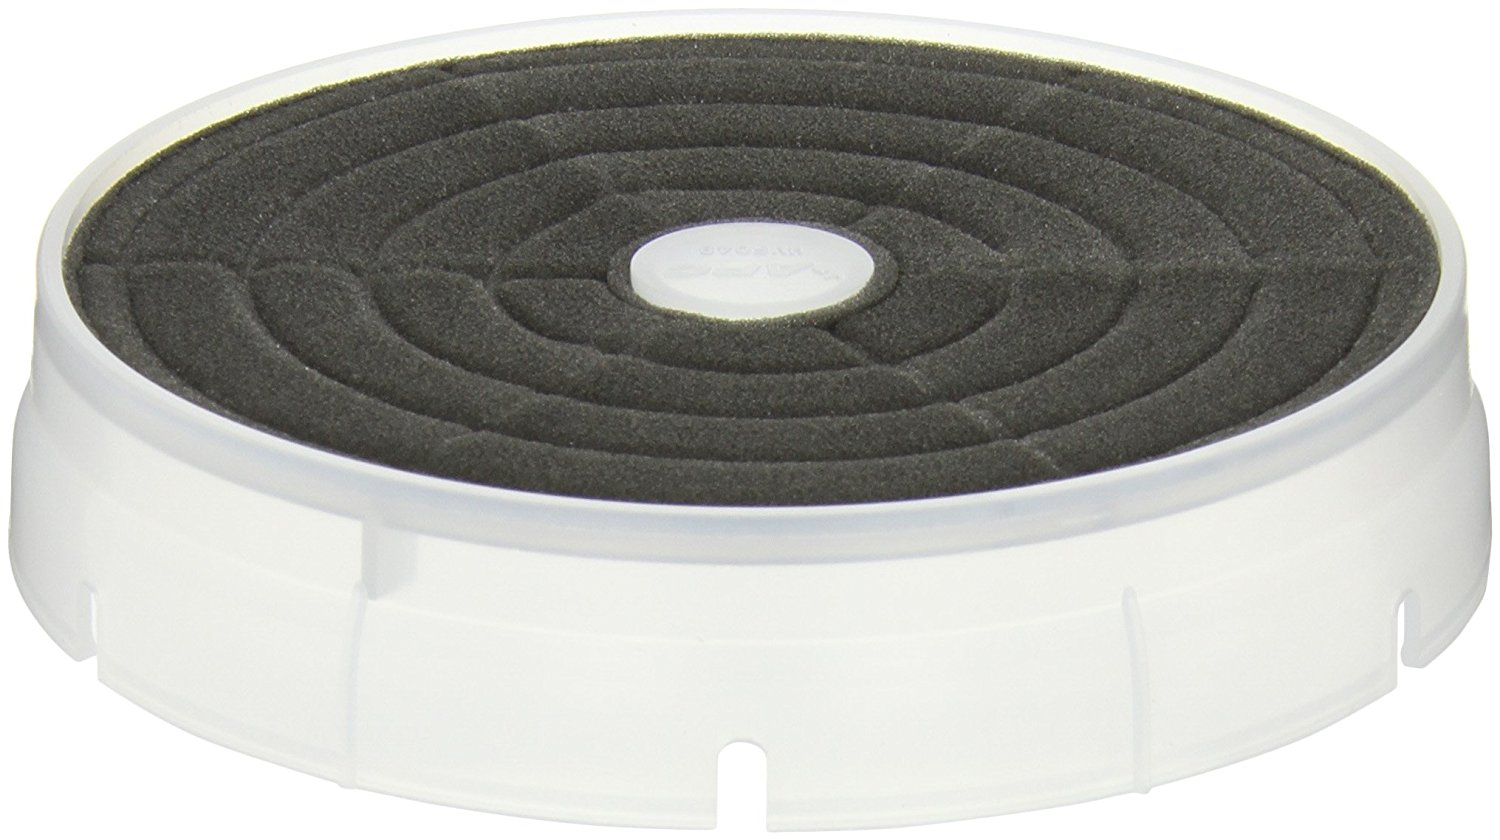 Janitized JAN-HVF049 Foam Premium Replacement Commercial Flat Vacuum Motor Filter For Clarke, Euroclean/Kent, Karcher/Tornado, Nilfisk-Advance, NSS, Windsor Wave and NuWave (Case of 50)